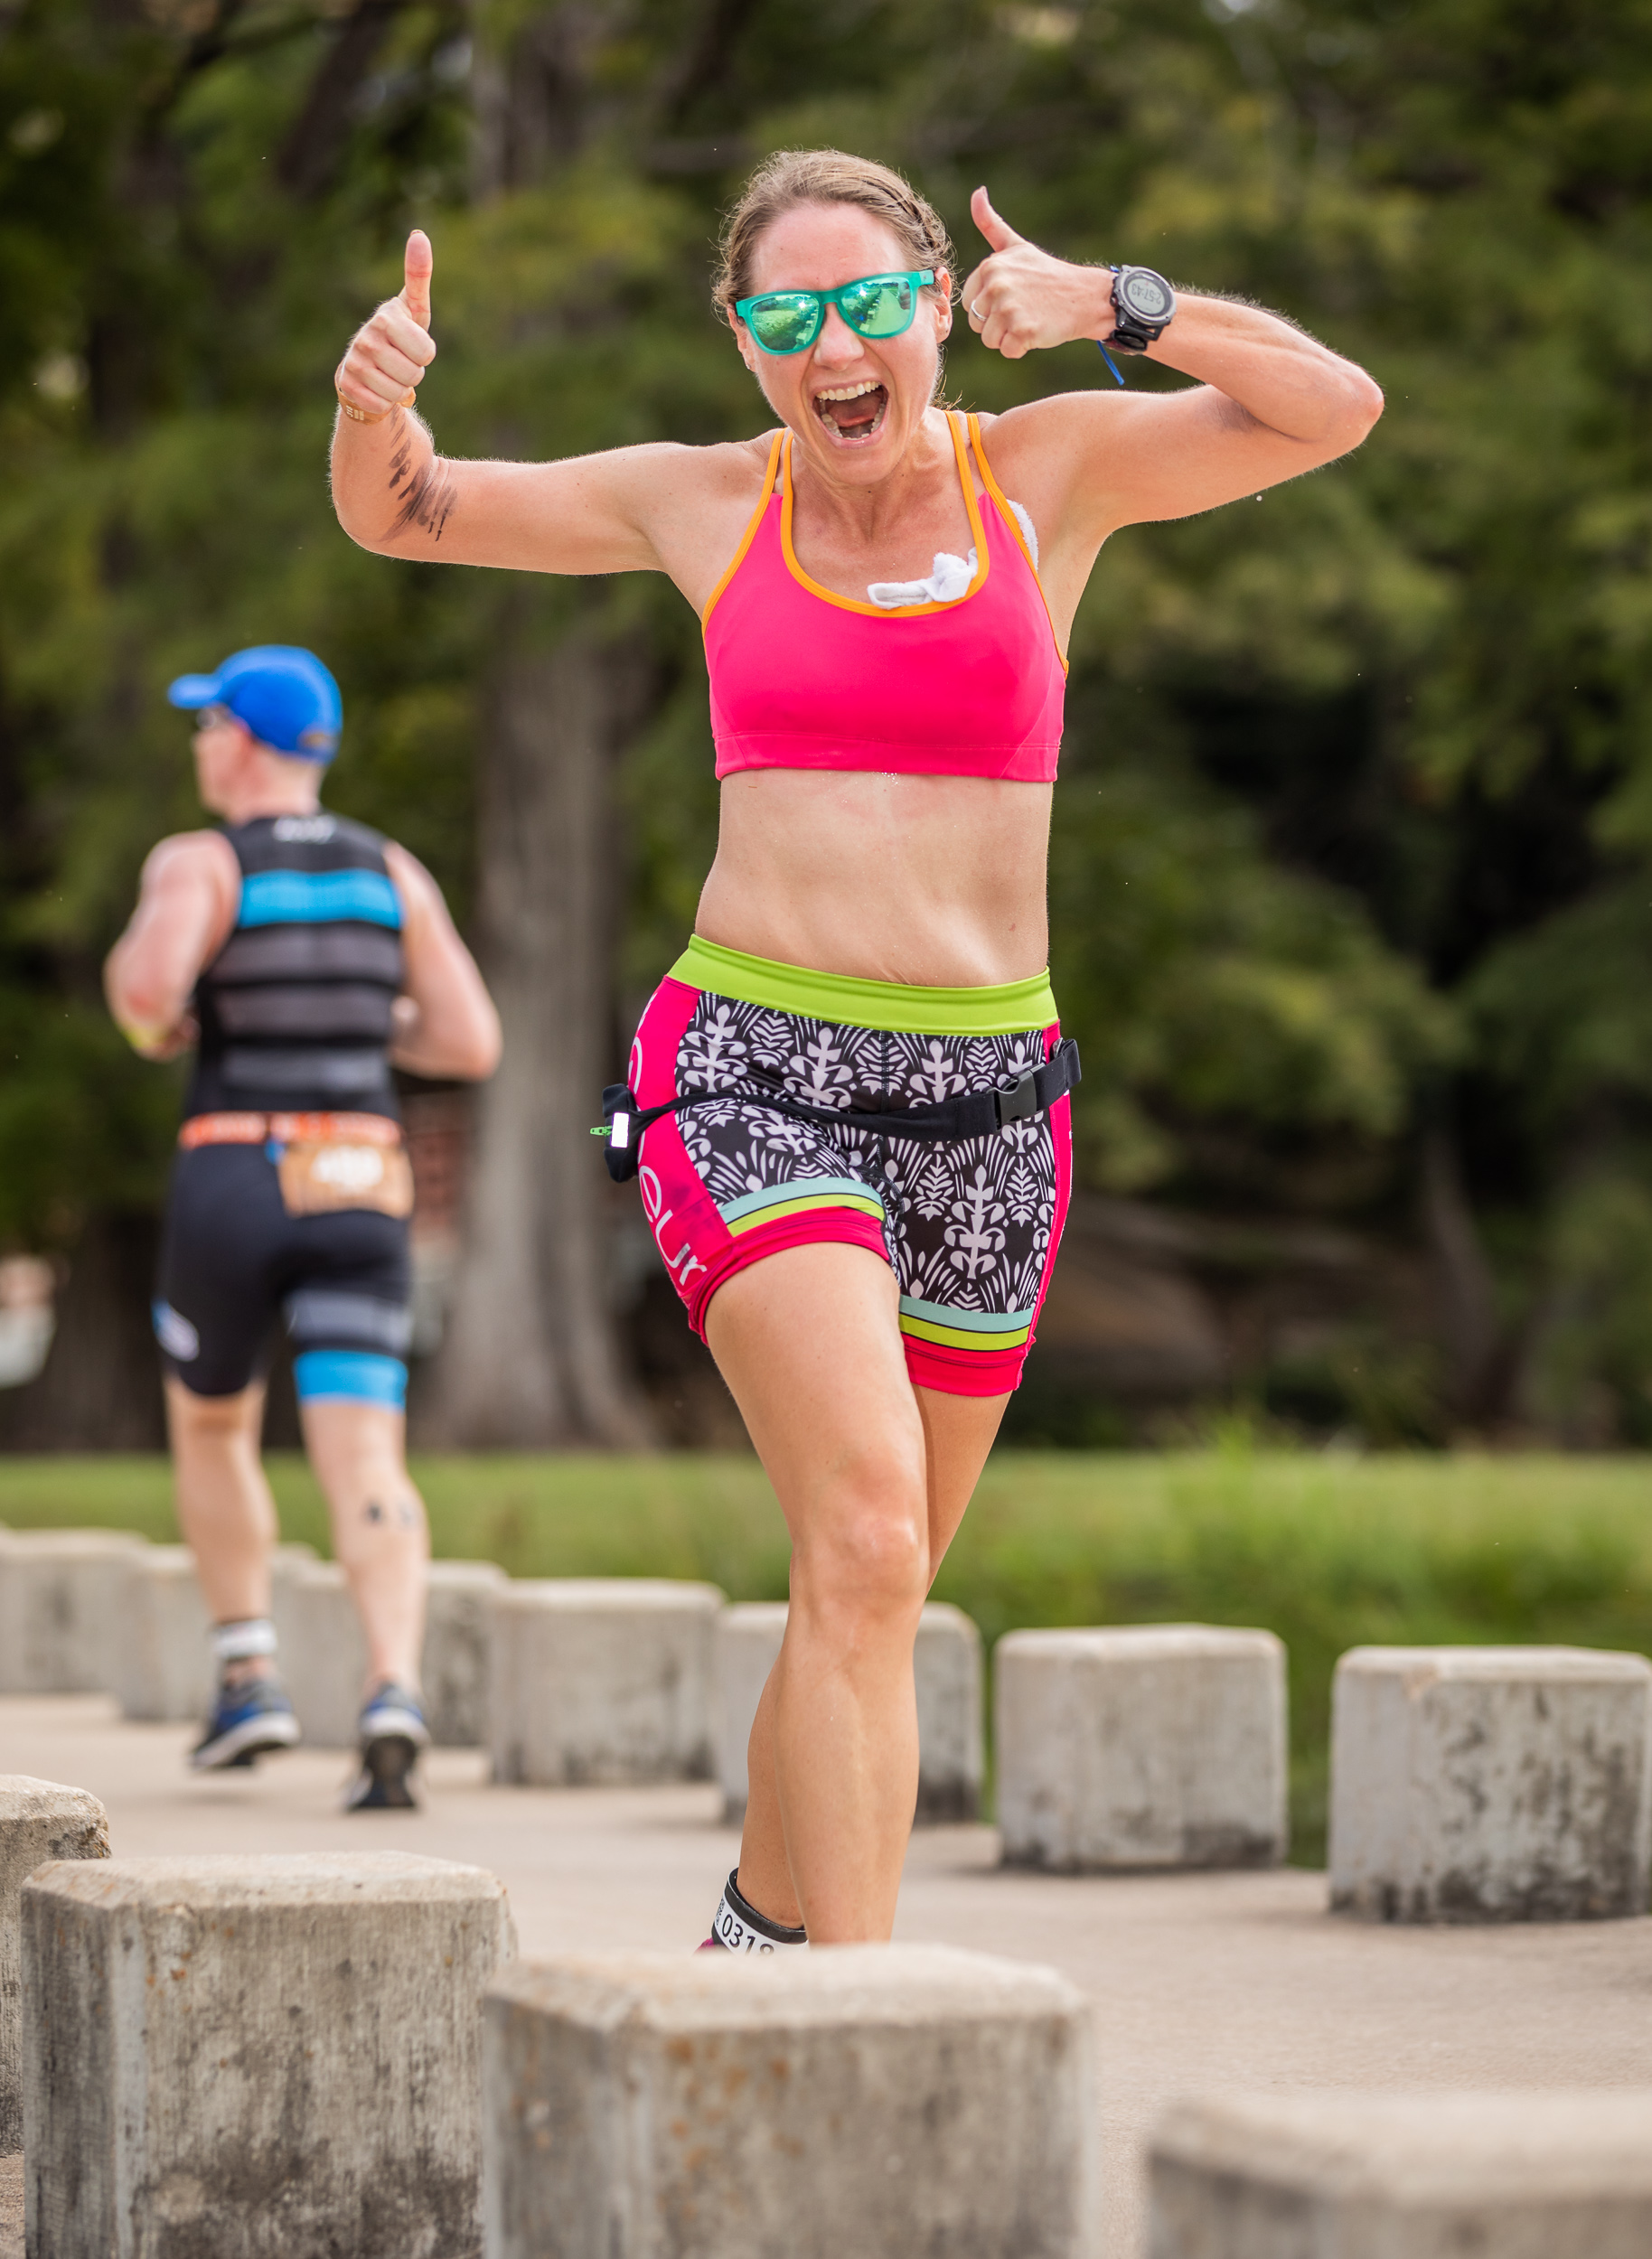 Continuing to run can help maintain body weight during the offseason.